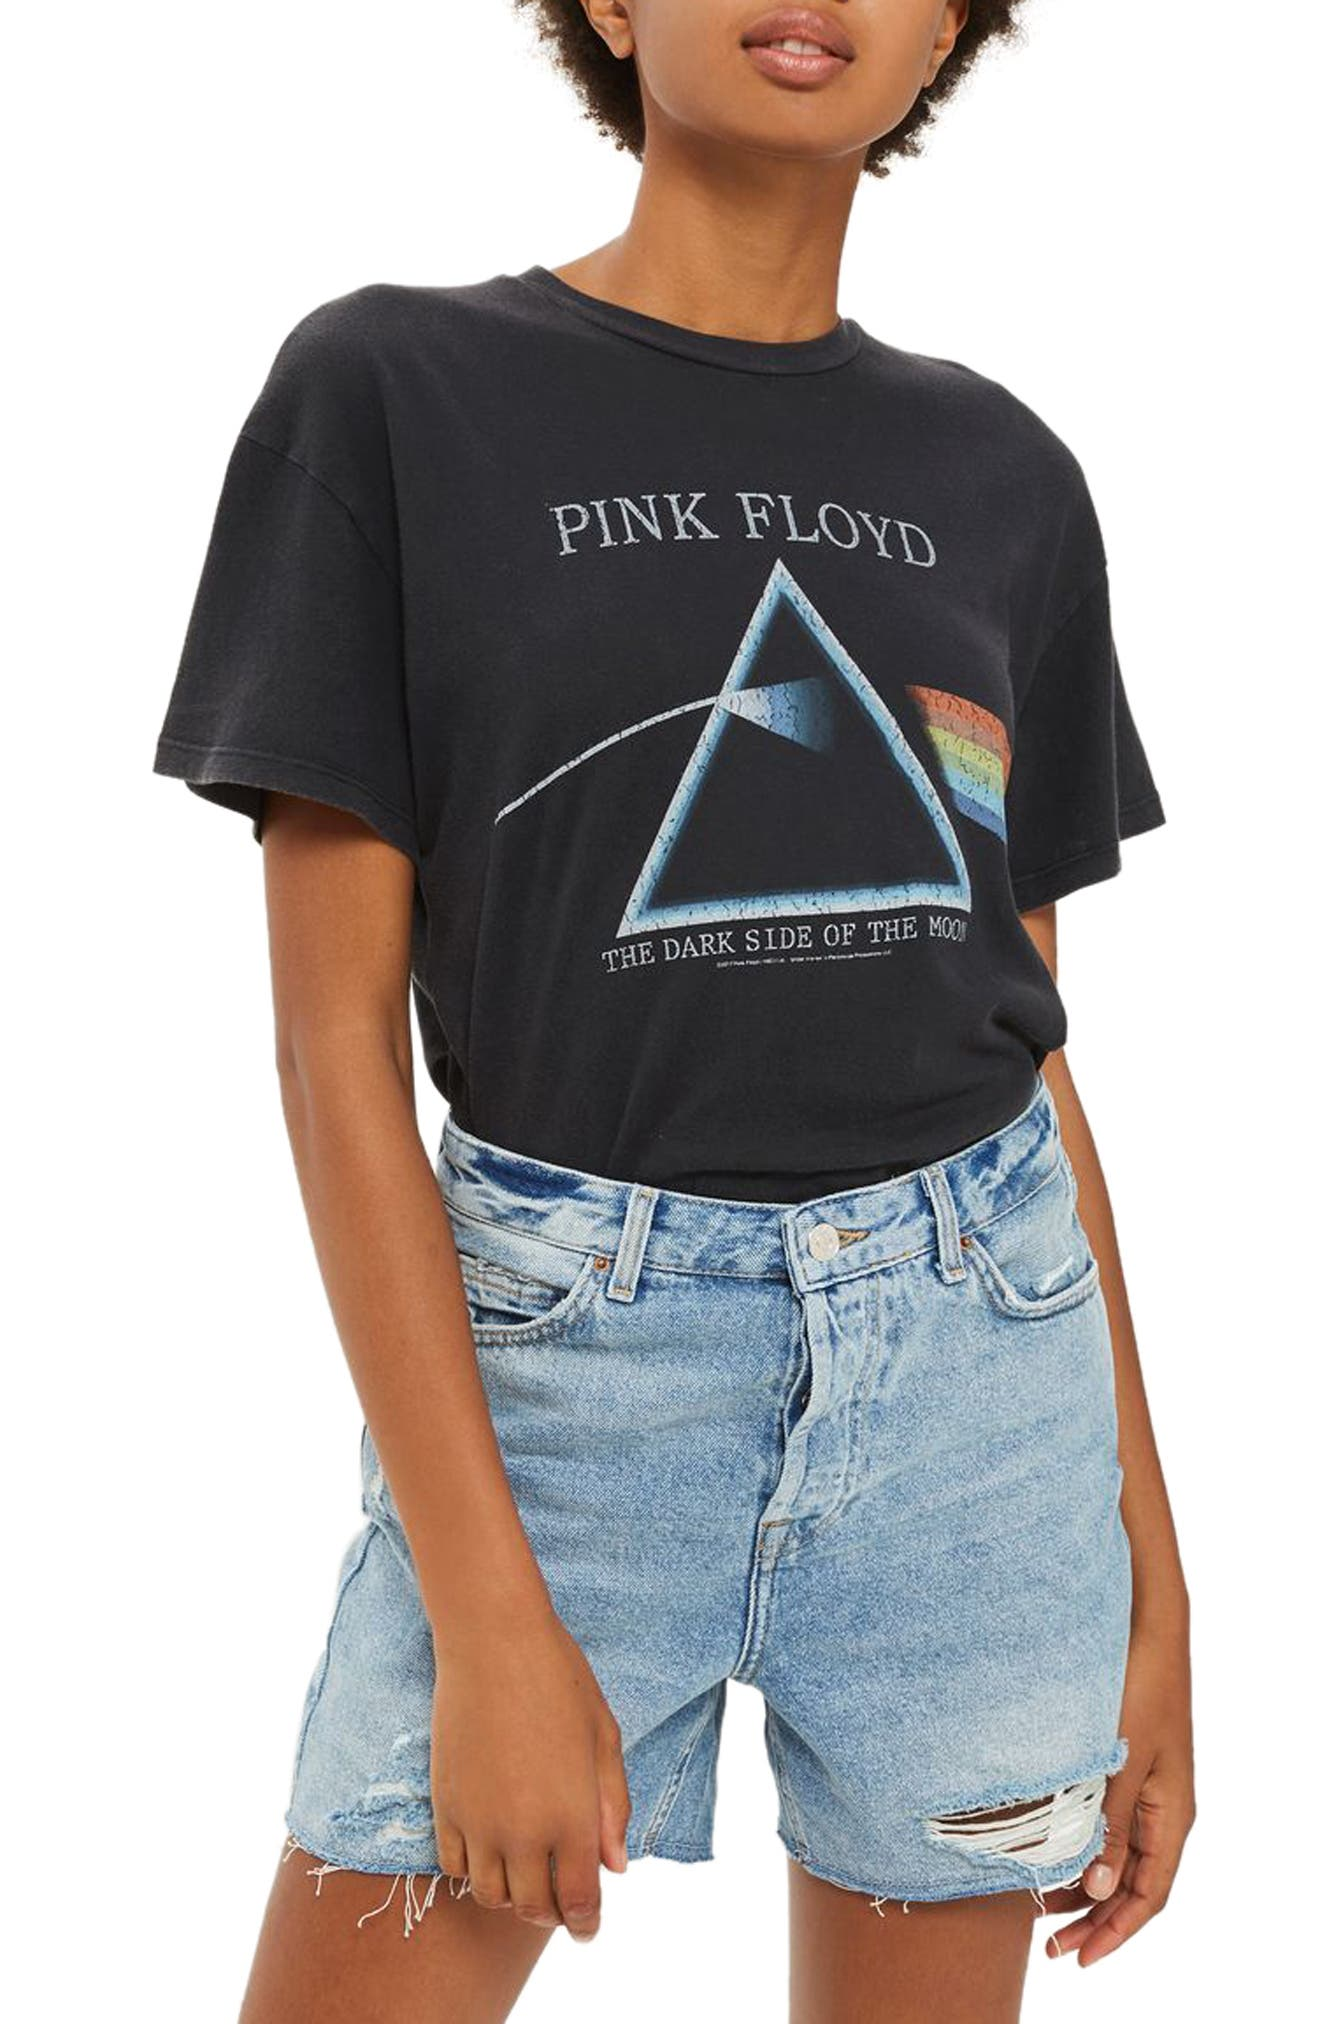 Topshop by And Finally Lace-Up Pink Floyd Tee